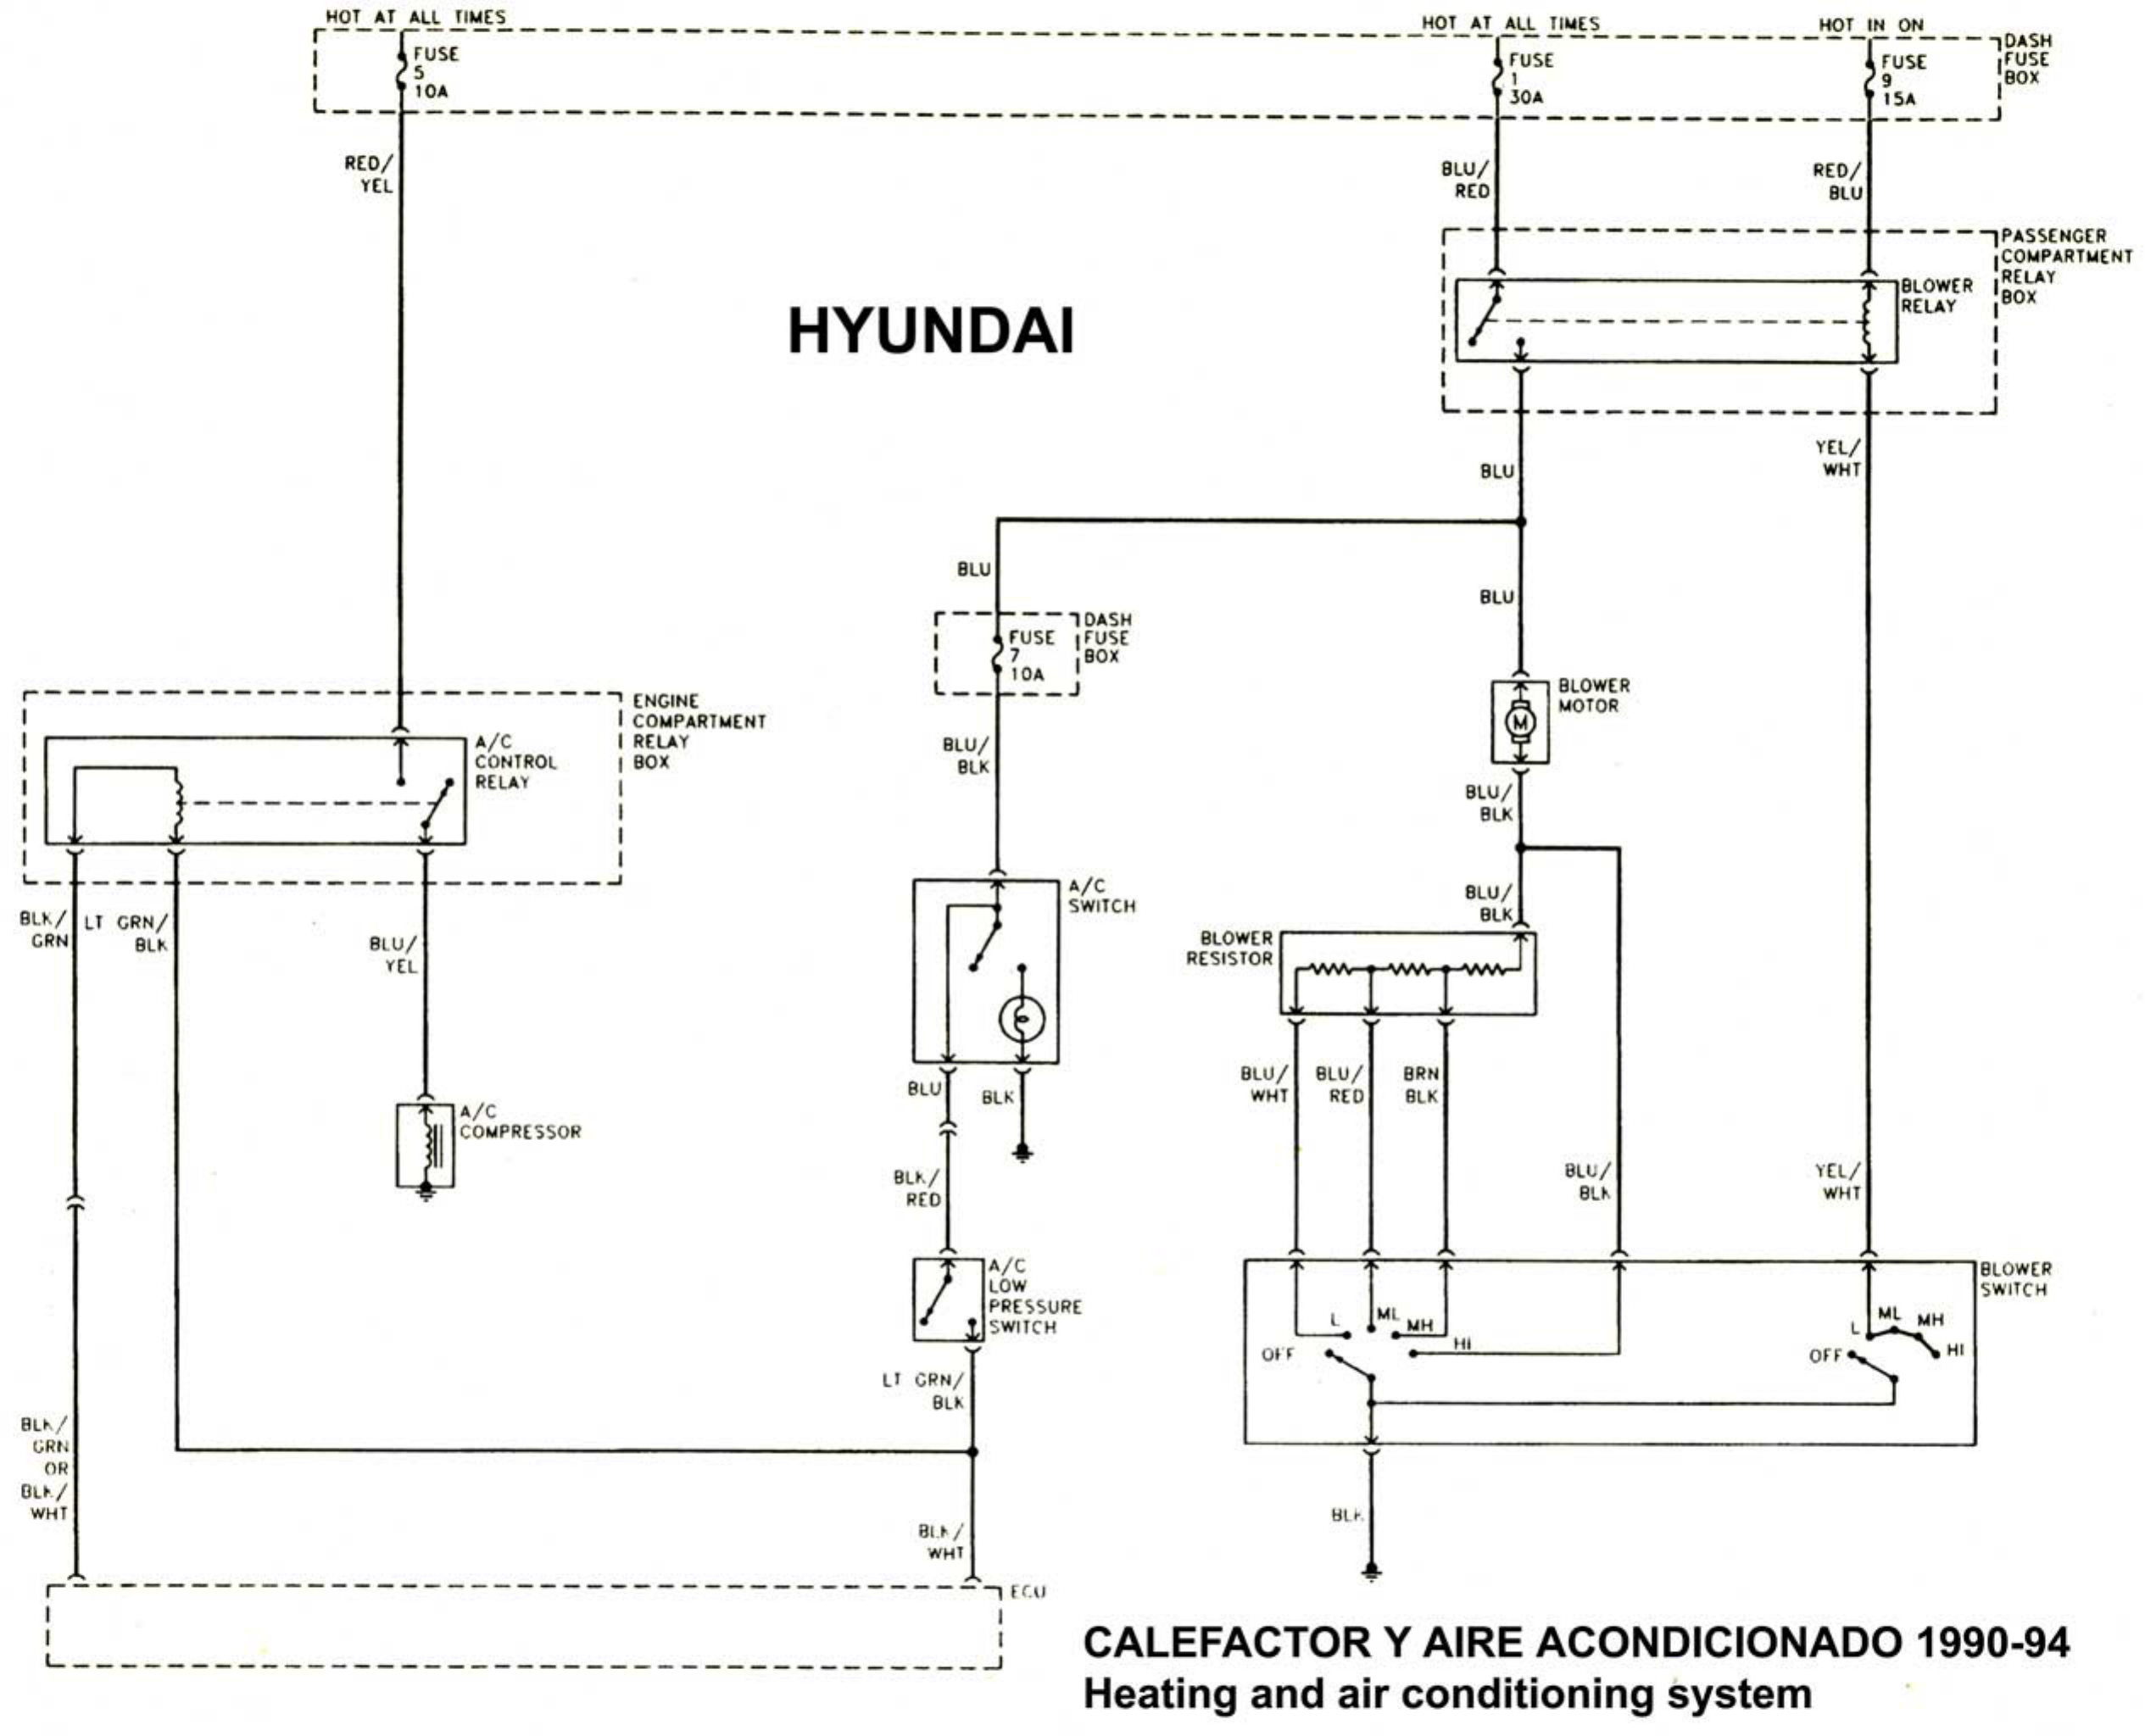 Hyundai Scoupe Fuse Box Diagram Wiring Library Excel 1992 Misc Document Spanish Pdf Rh Manuals Co